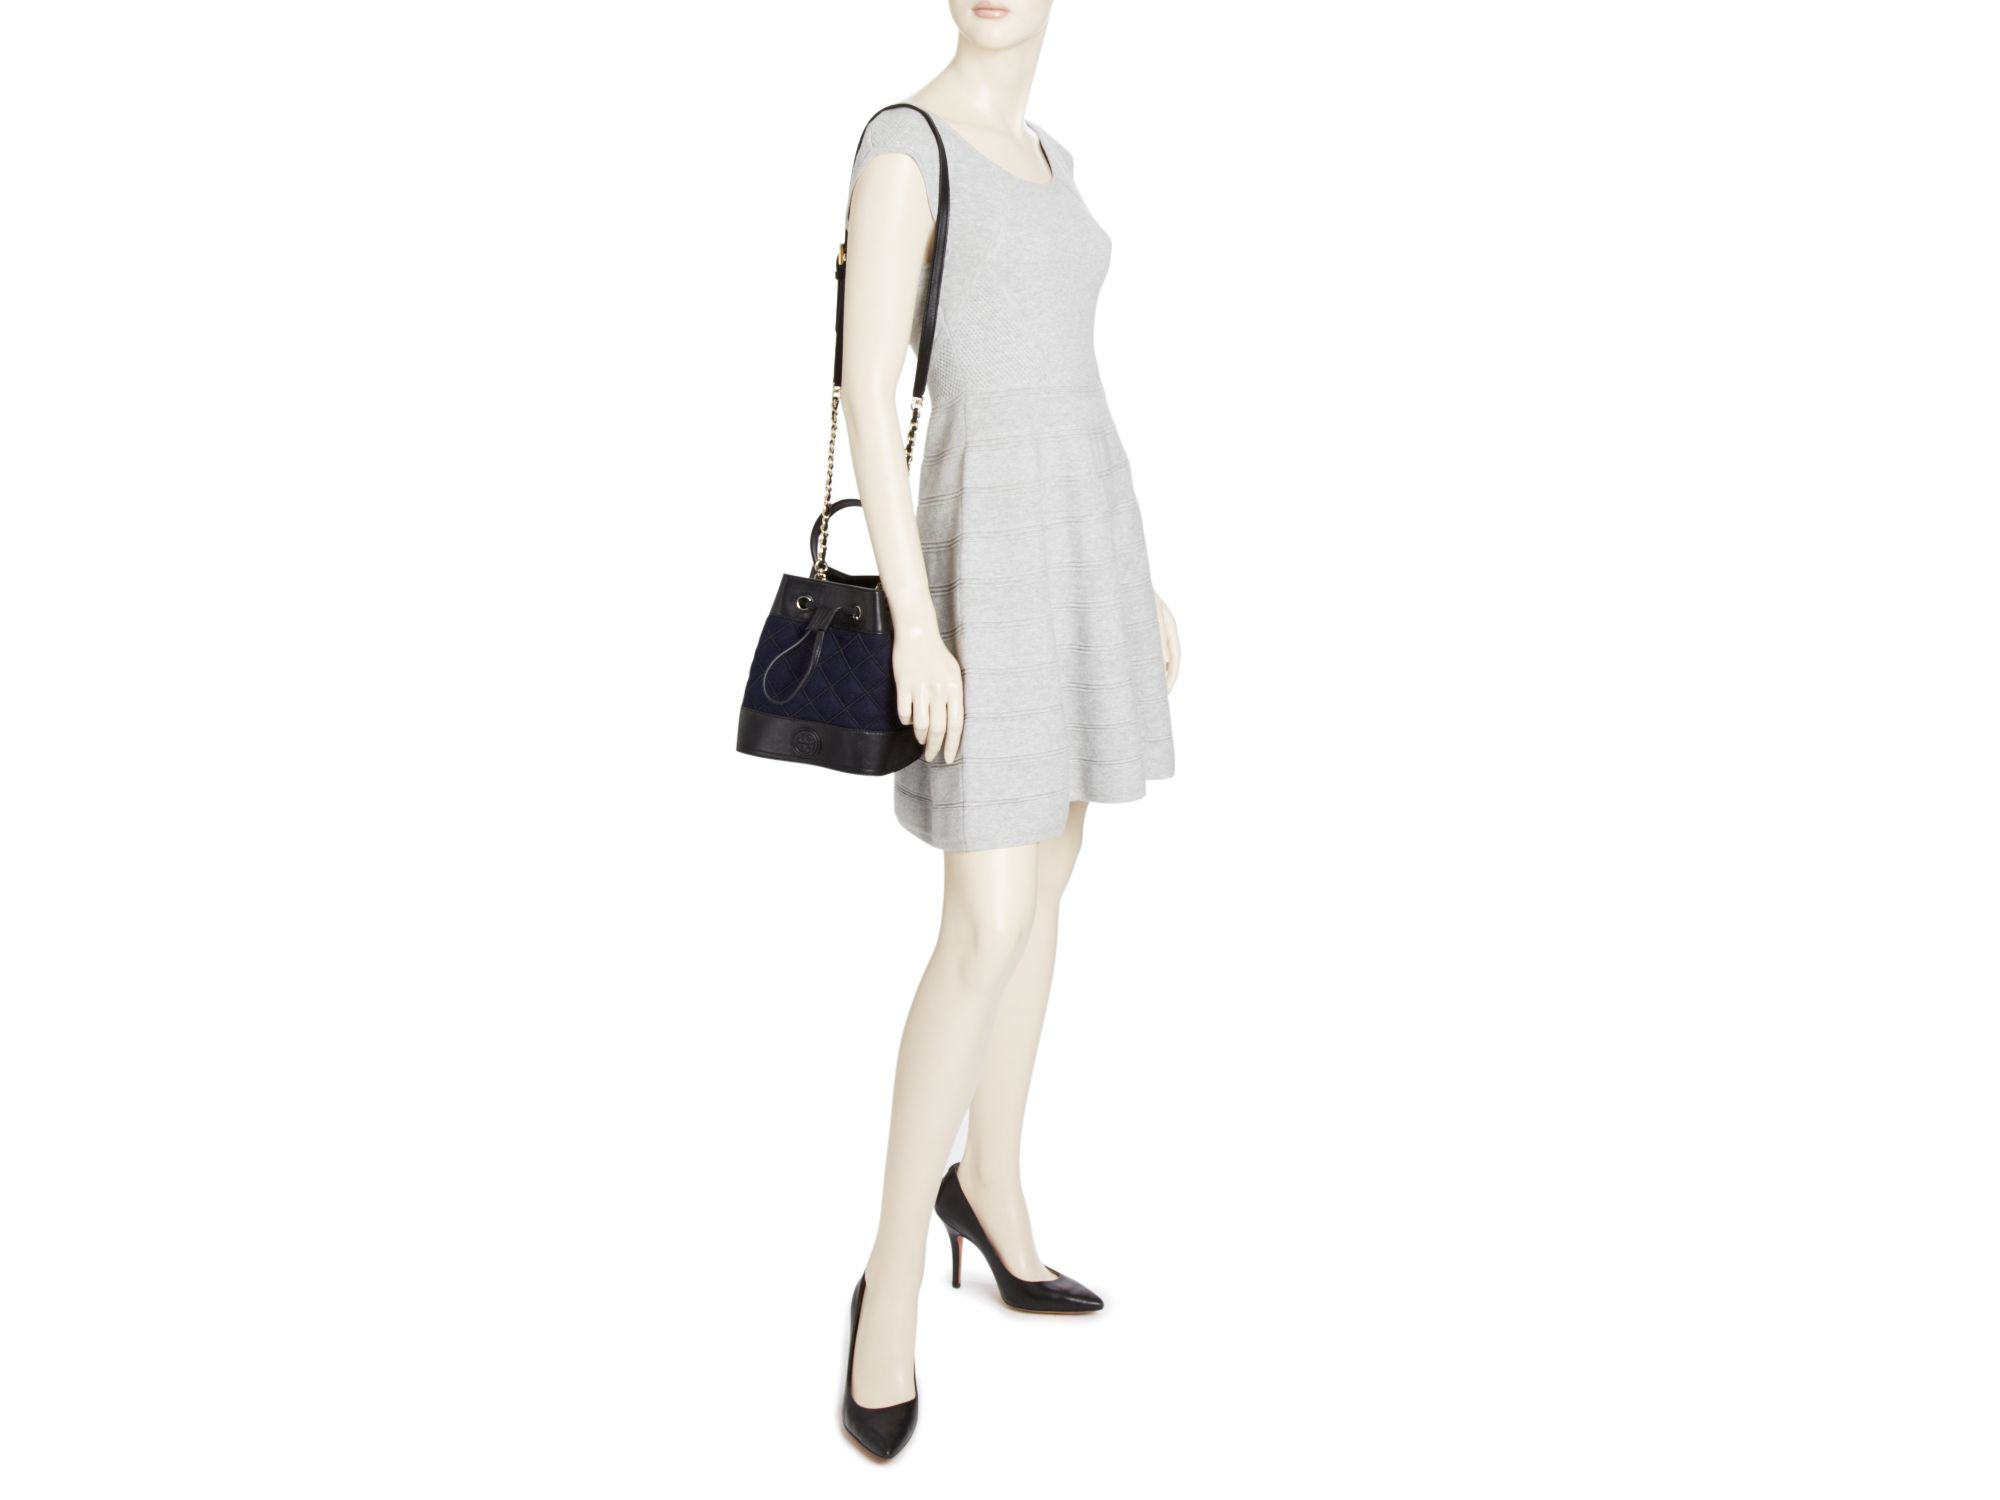 b83f2cb0157 Gallery. Previously sold at: Bloomingdale's · Women's Tory Burch Marion